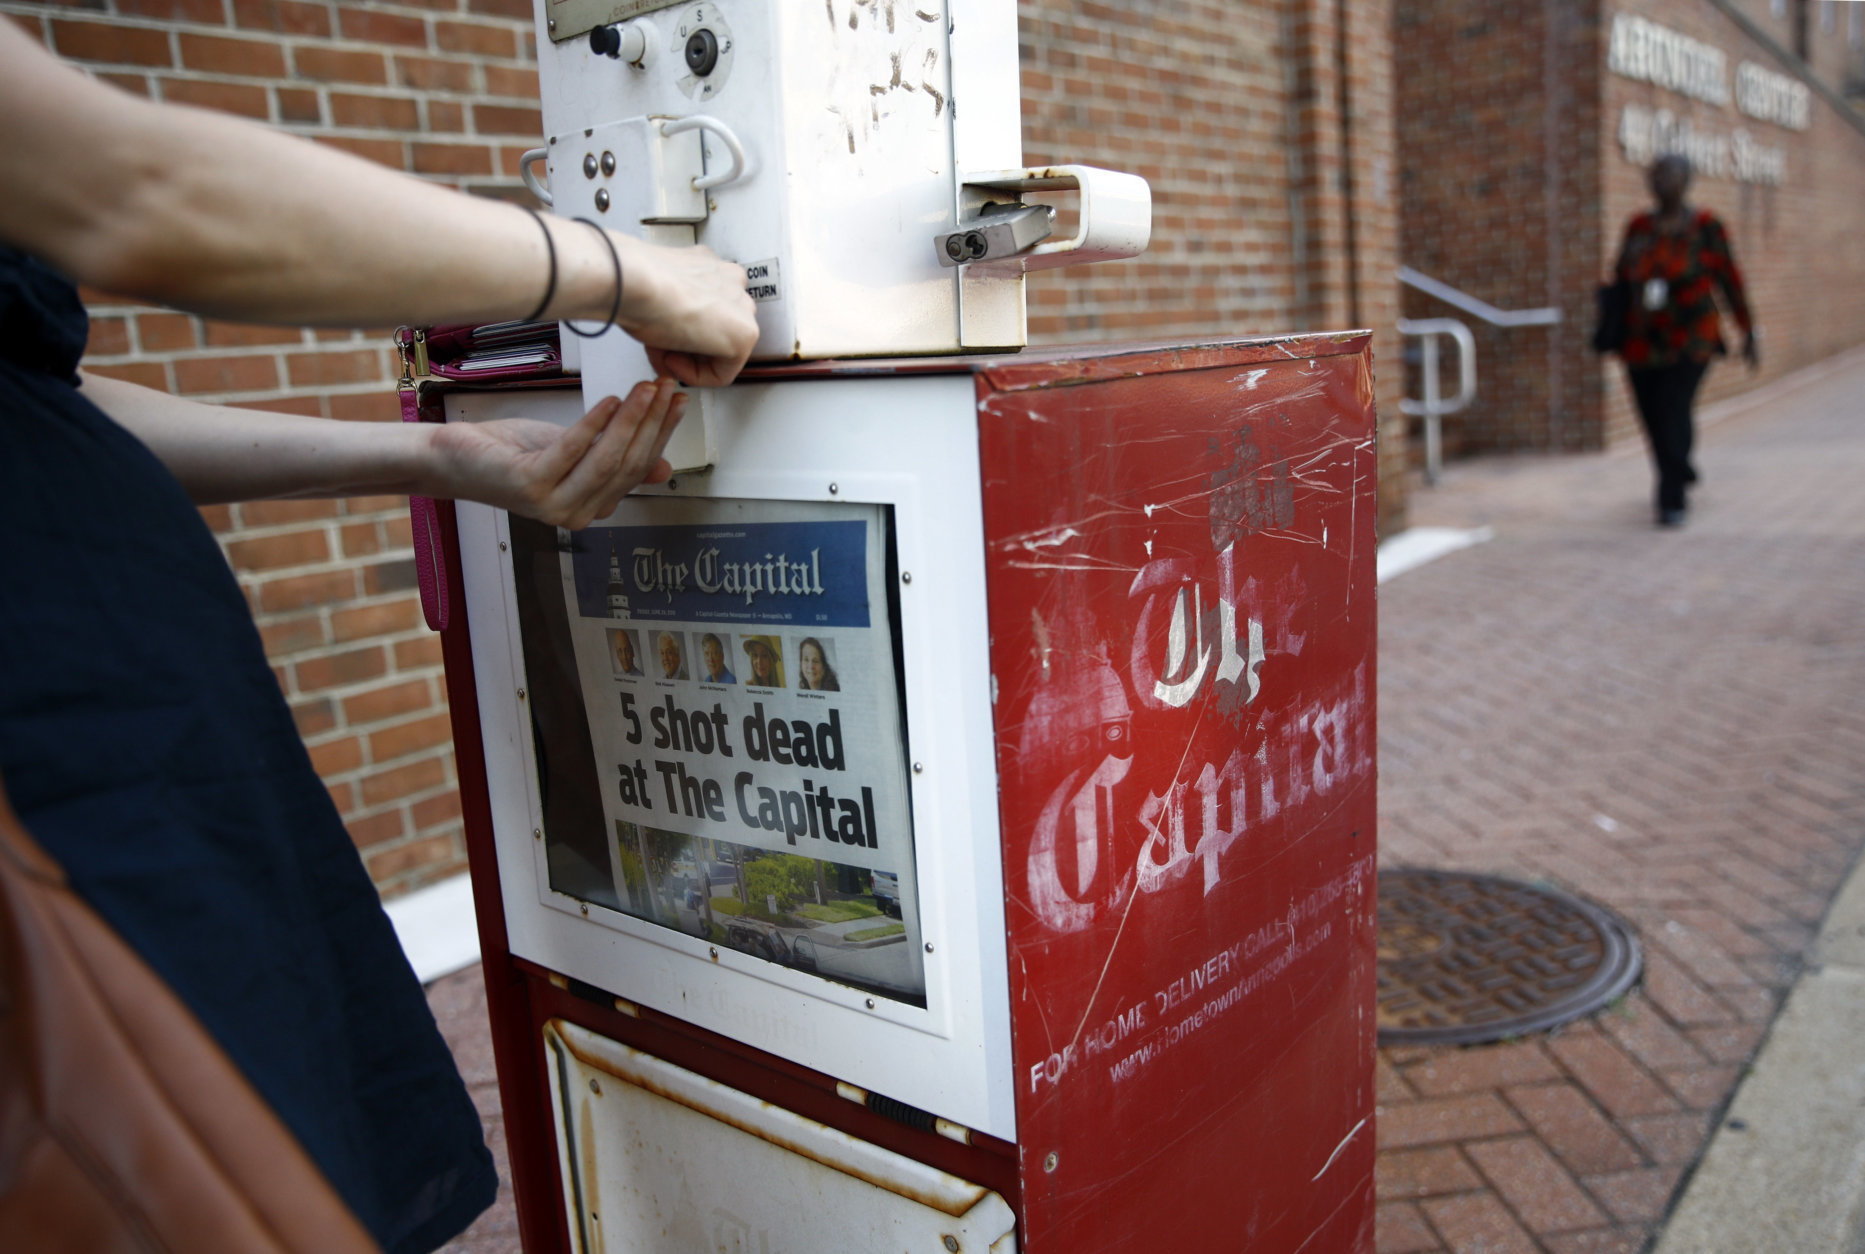 Angela Gentile, of College Park, Md., tries to buy a copy of The Capital Gazette from a newspaper rack, Friday, June 29, 2018, in Annapolis, Md. A man armed with smoke grenades and a shotgun attacked journalists in the newspaper's building Thursday, killing several people before police quickly stormed the building and arrested him, police and witnesses said. (AP Photo/Patrick Semansky)